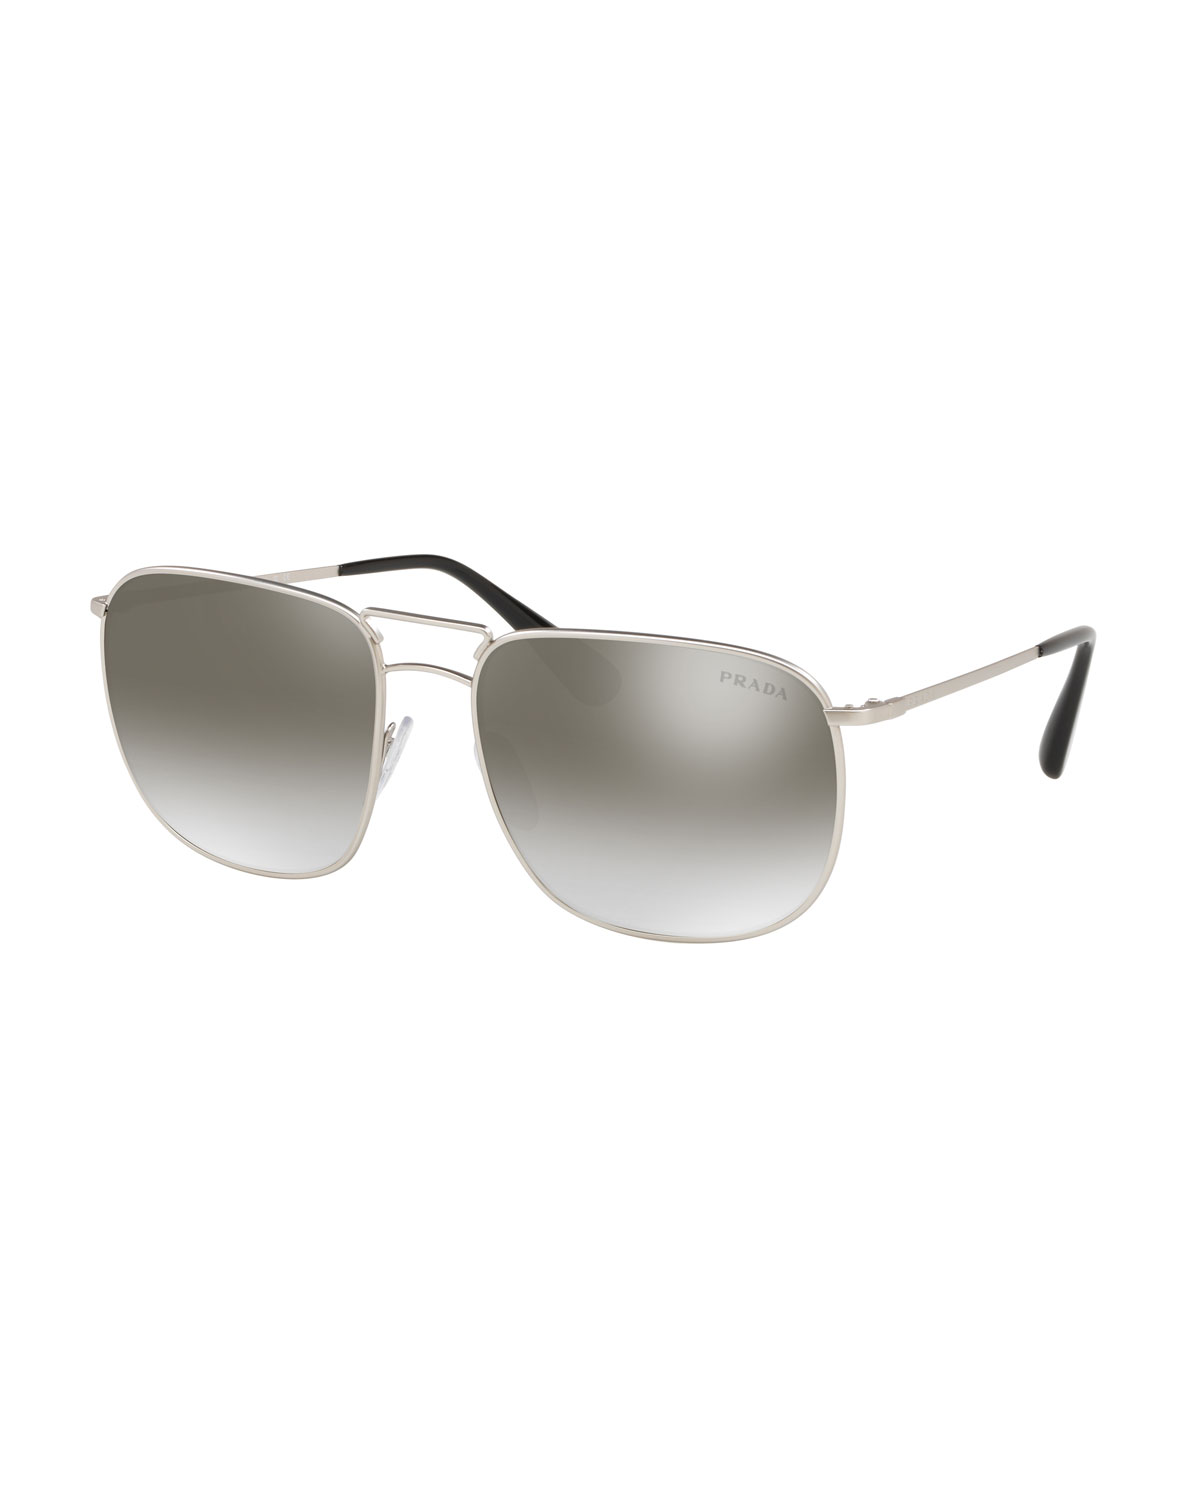 23f609f9a0 PRADA MEN S SQUARE METAL AVIATOR SUNGLASSES - MIRRORED LENSES